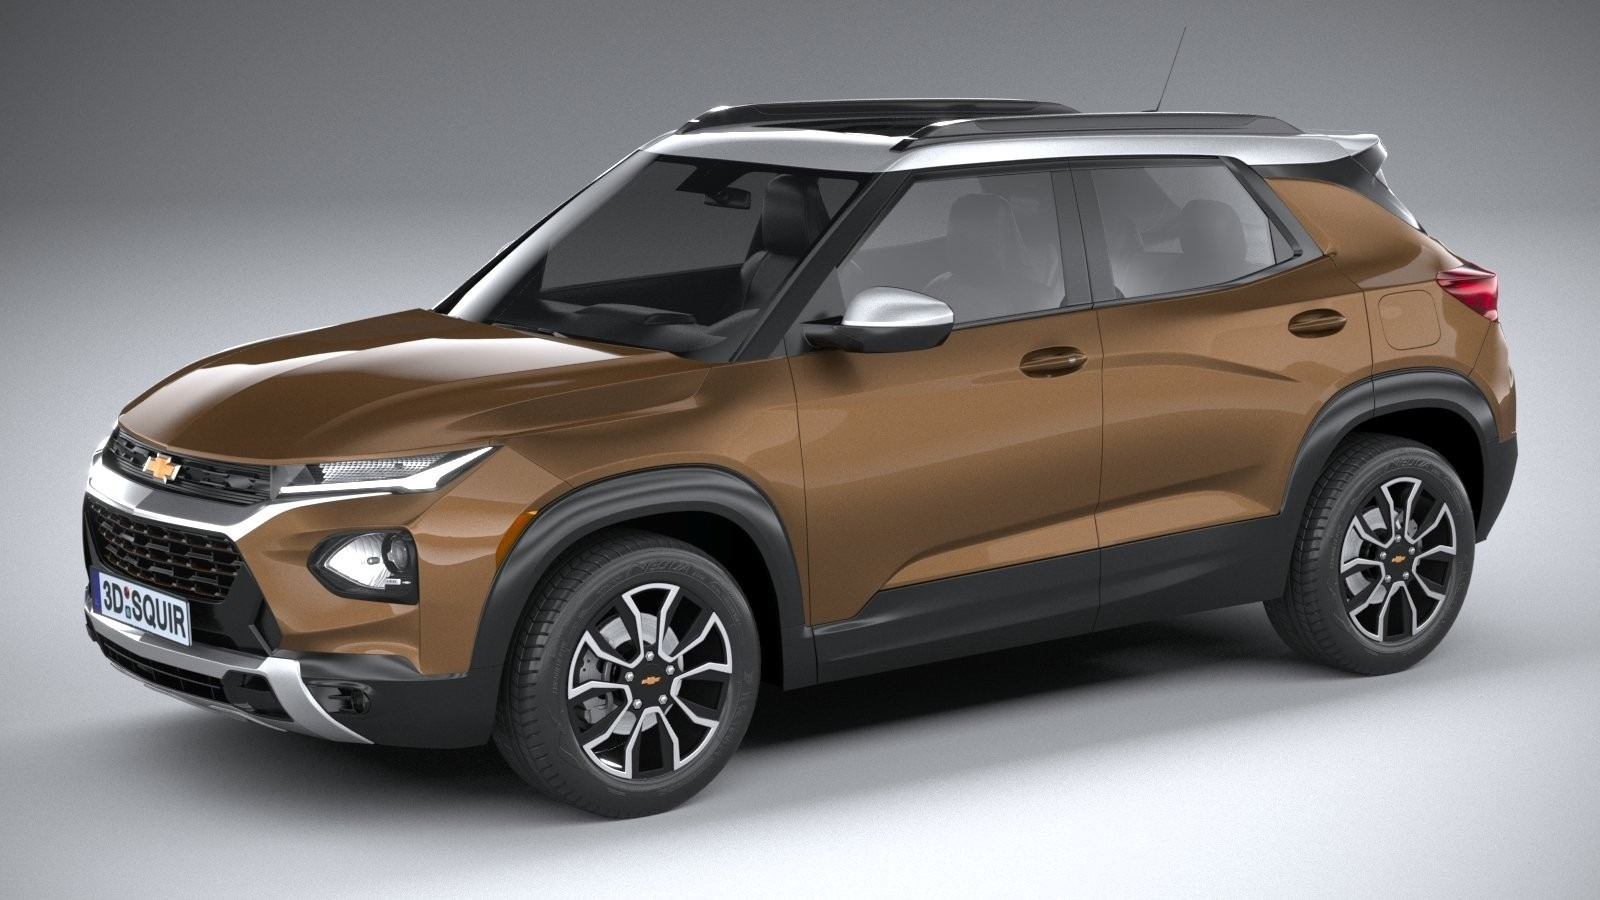 2022 Chevrolet Trailblazer Redesign